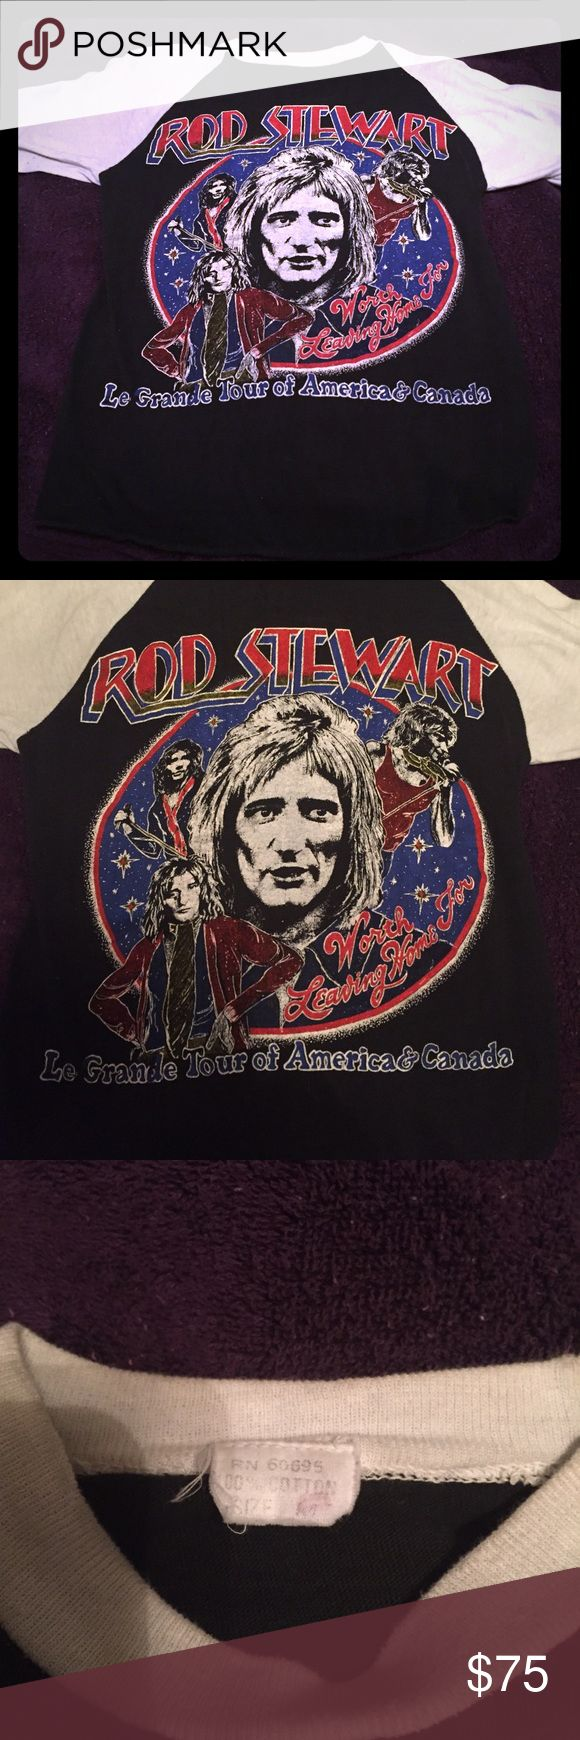 """Vintage ROD STEWART tour shirt from early 80s Very rare """"Bootleg"""" Rod Stewart concert shirt from early 1980s. Size extra small. Tops Tees - Long Sleeve"""